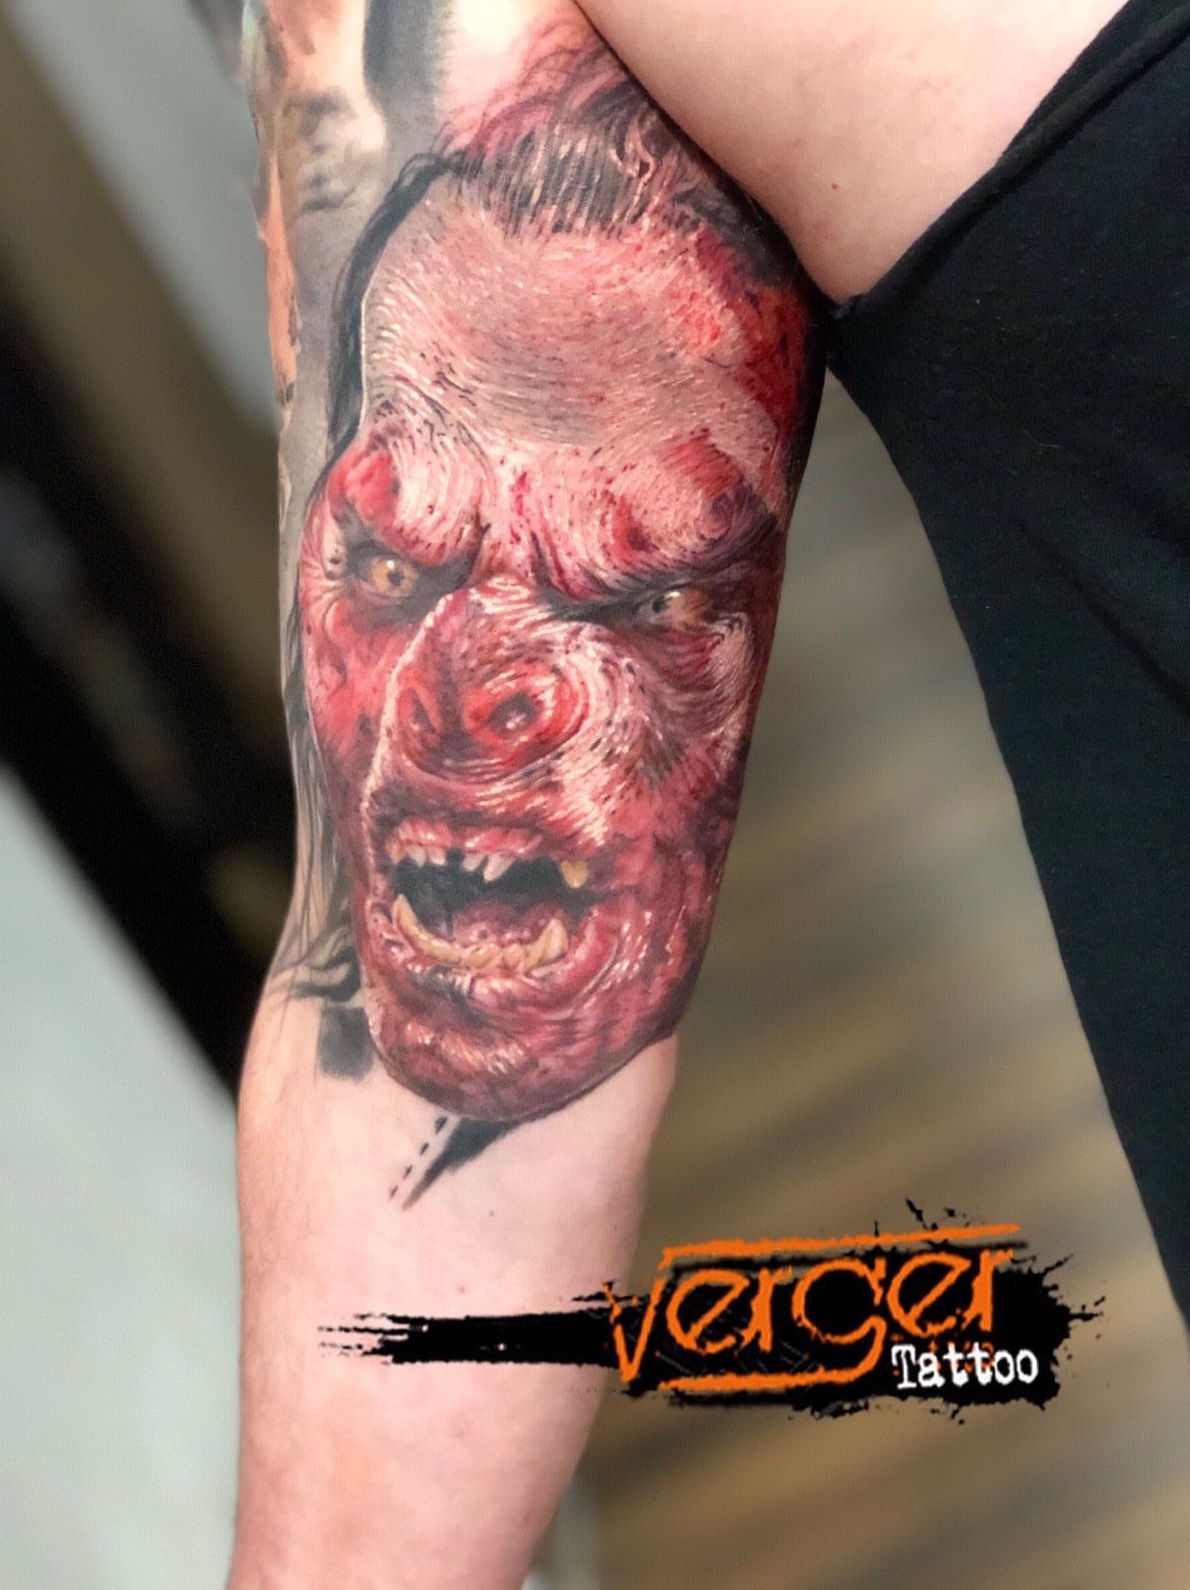 Tatuaje realismo Santander. Uruk Hai Tattoo. Tatuaje a color Santander. Verger Tattoo. JR Verger